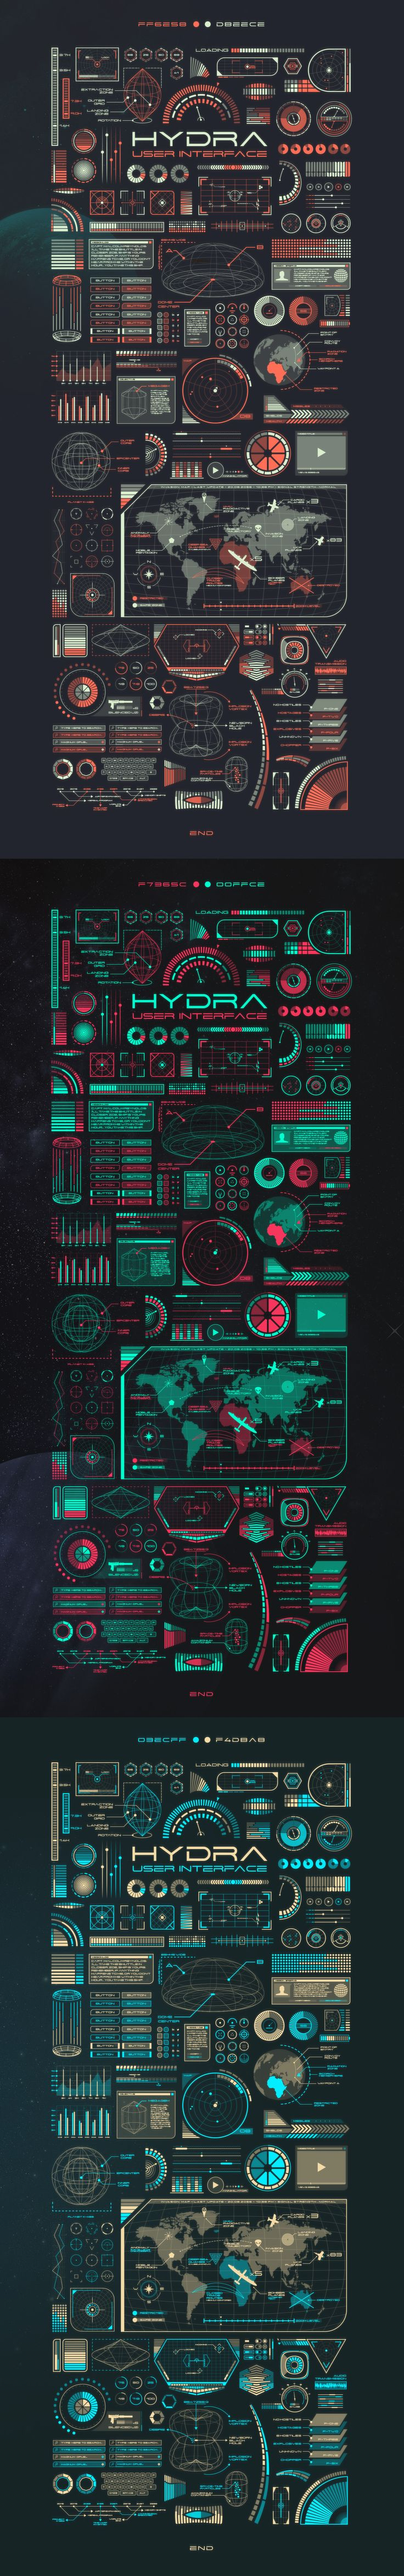 Hydra UI on Behance  https://www.behance.net/gallery/29380757/Hydra-UI